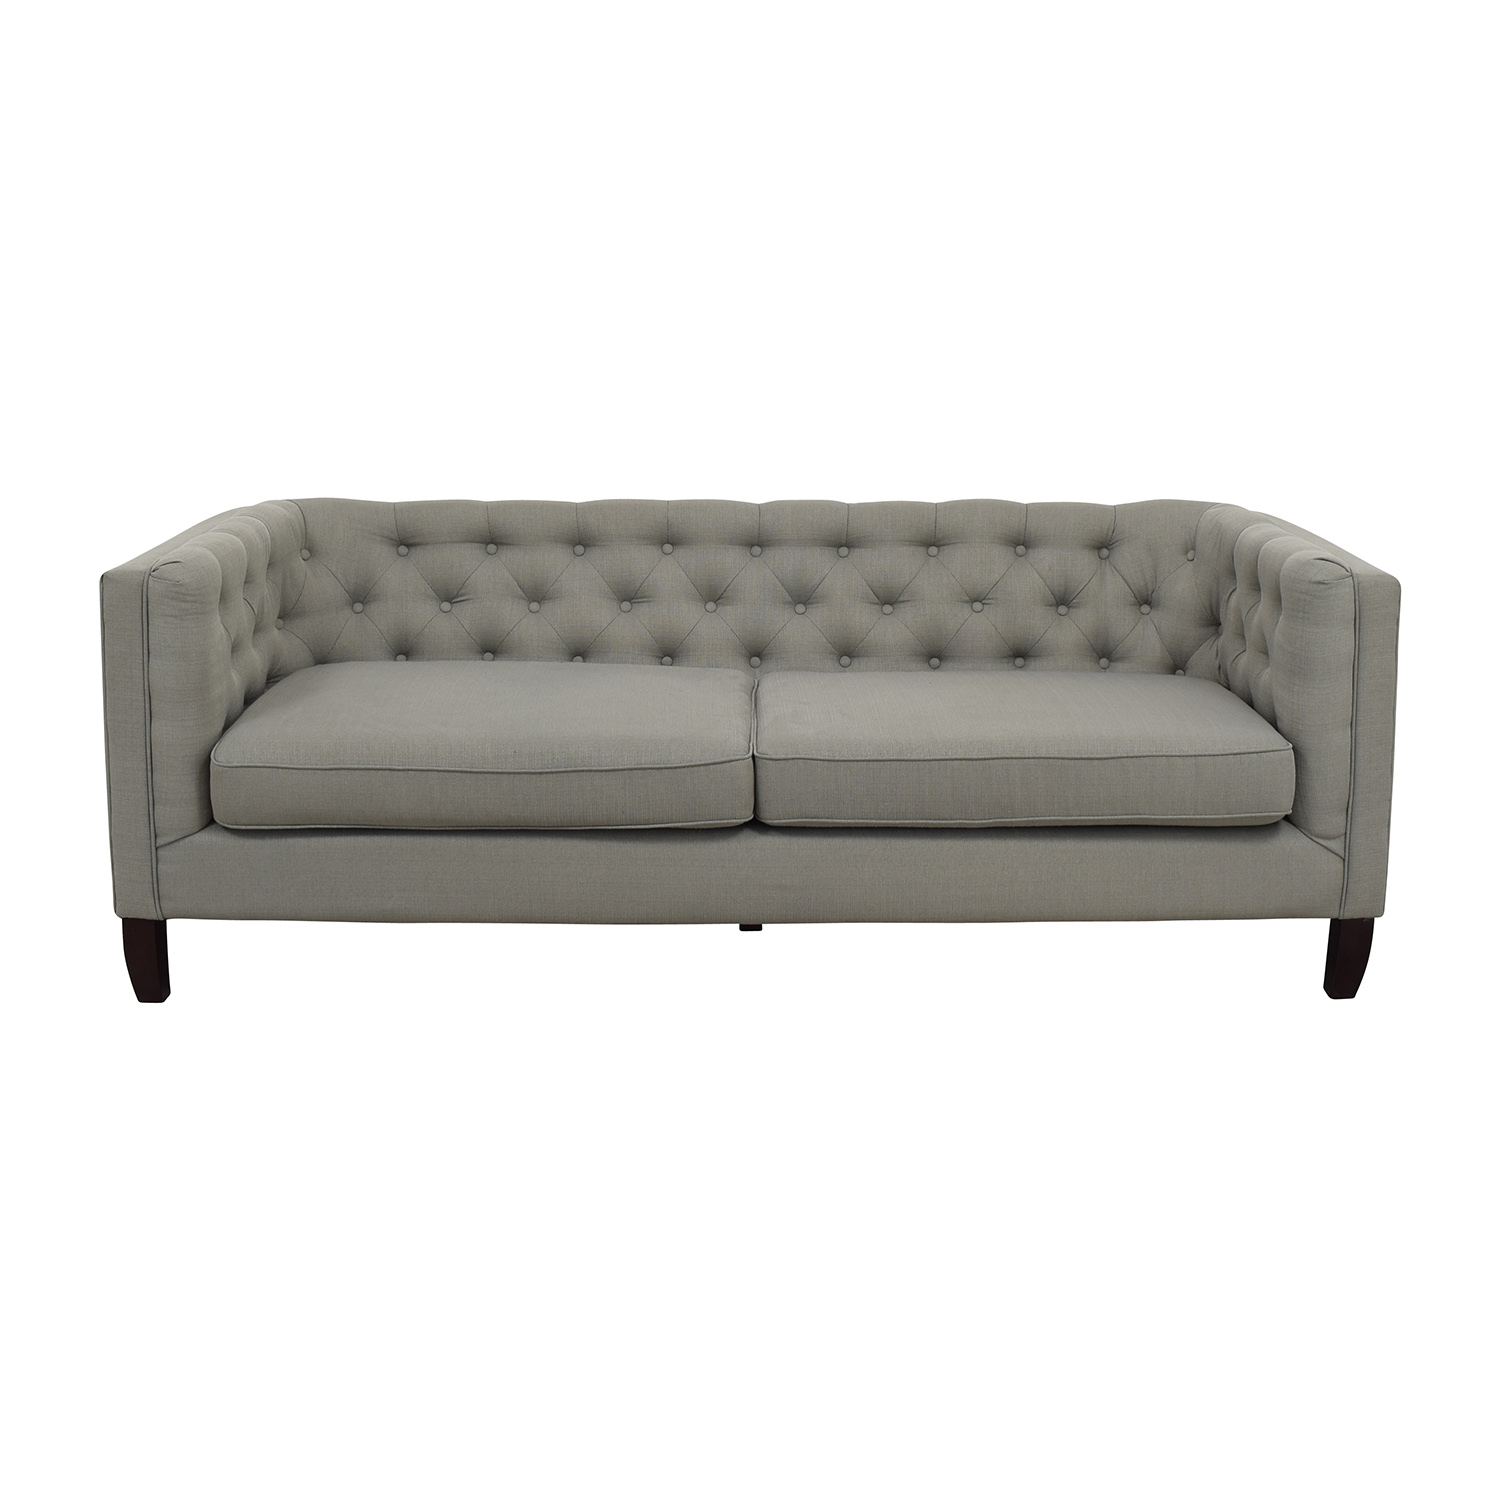 World Market World Market Kendall Sofa price